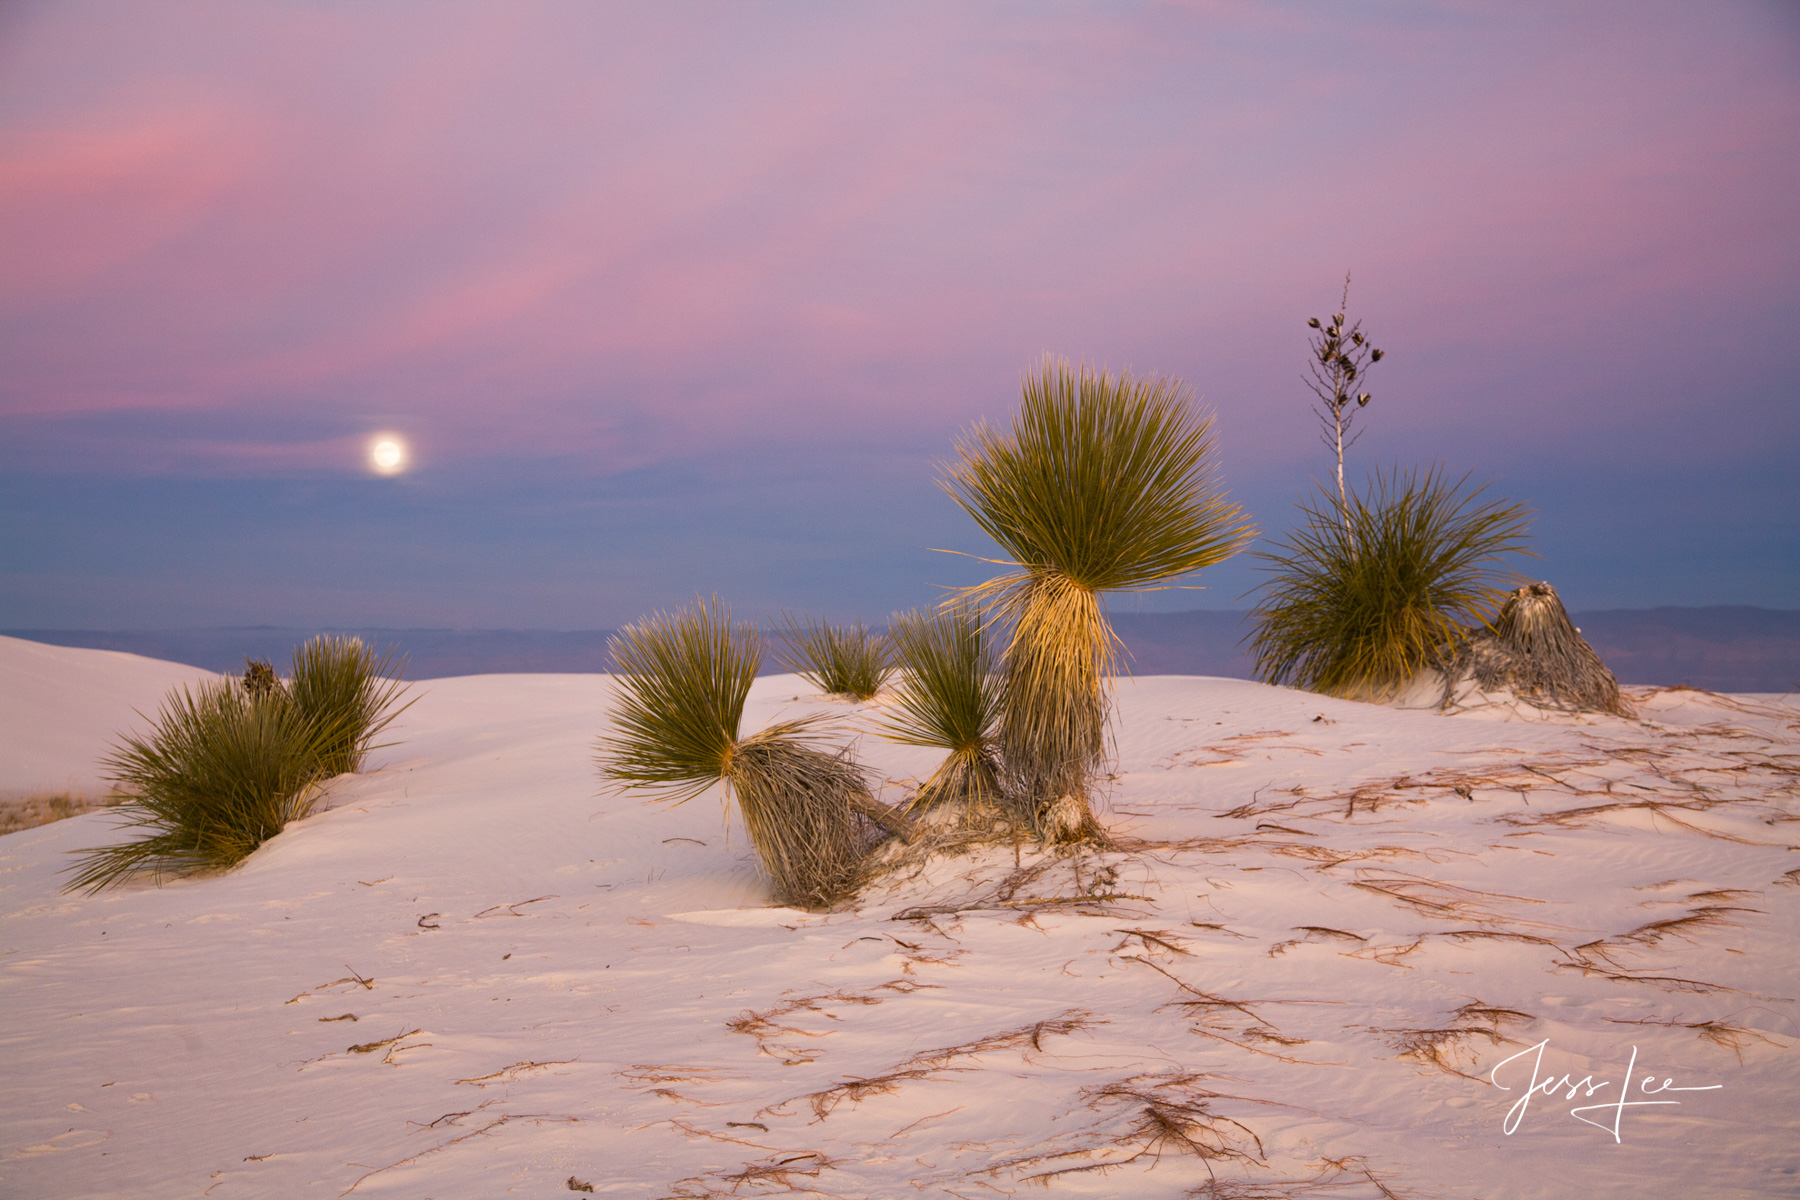 Limited Edition of 50 Exclusive high-resolution Museum Quality Fine Art Prints of New Mexico Desert and Badlands. Photos copyright...